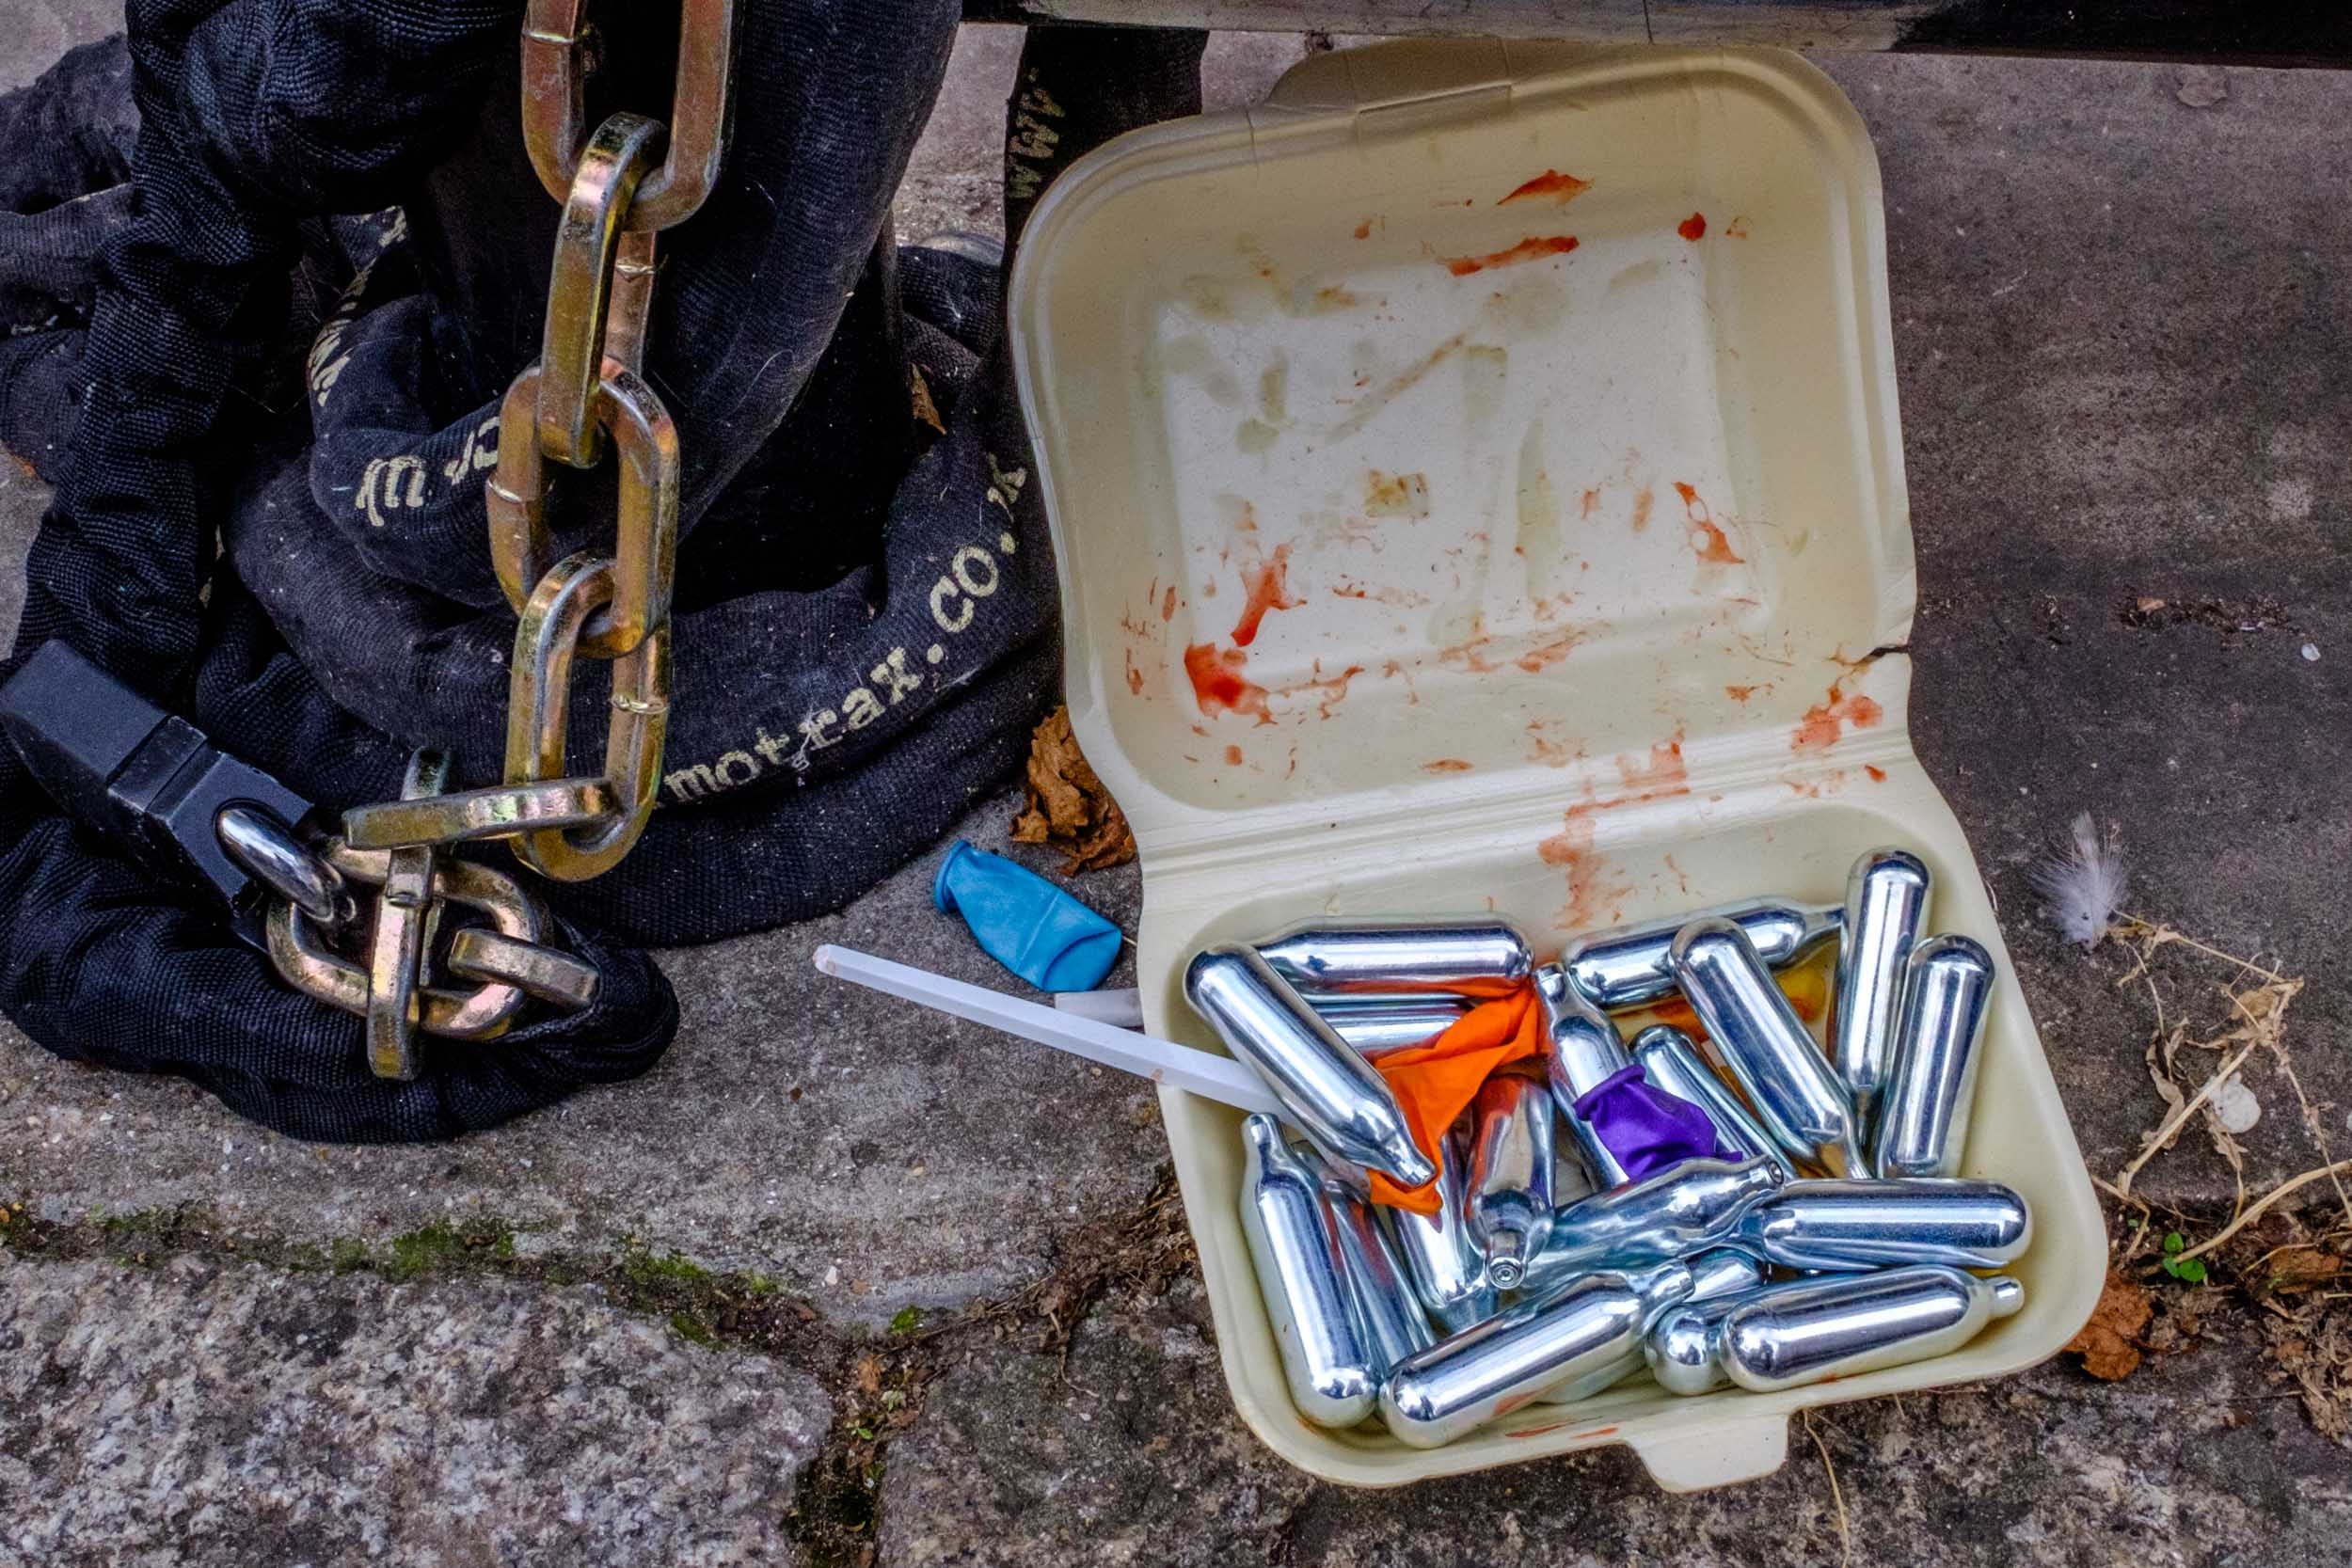 Nitrous Oxide Canisters, Balloons, Plastic Fork, Polystyrene Container. London 2017